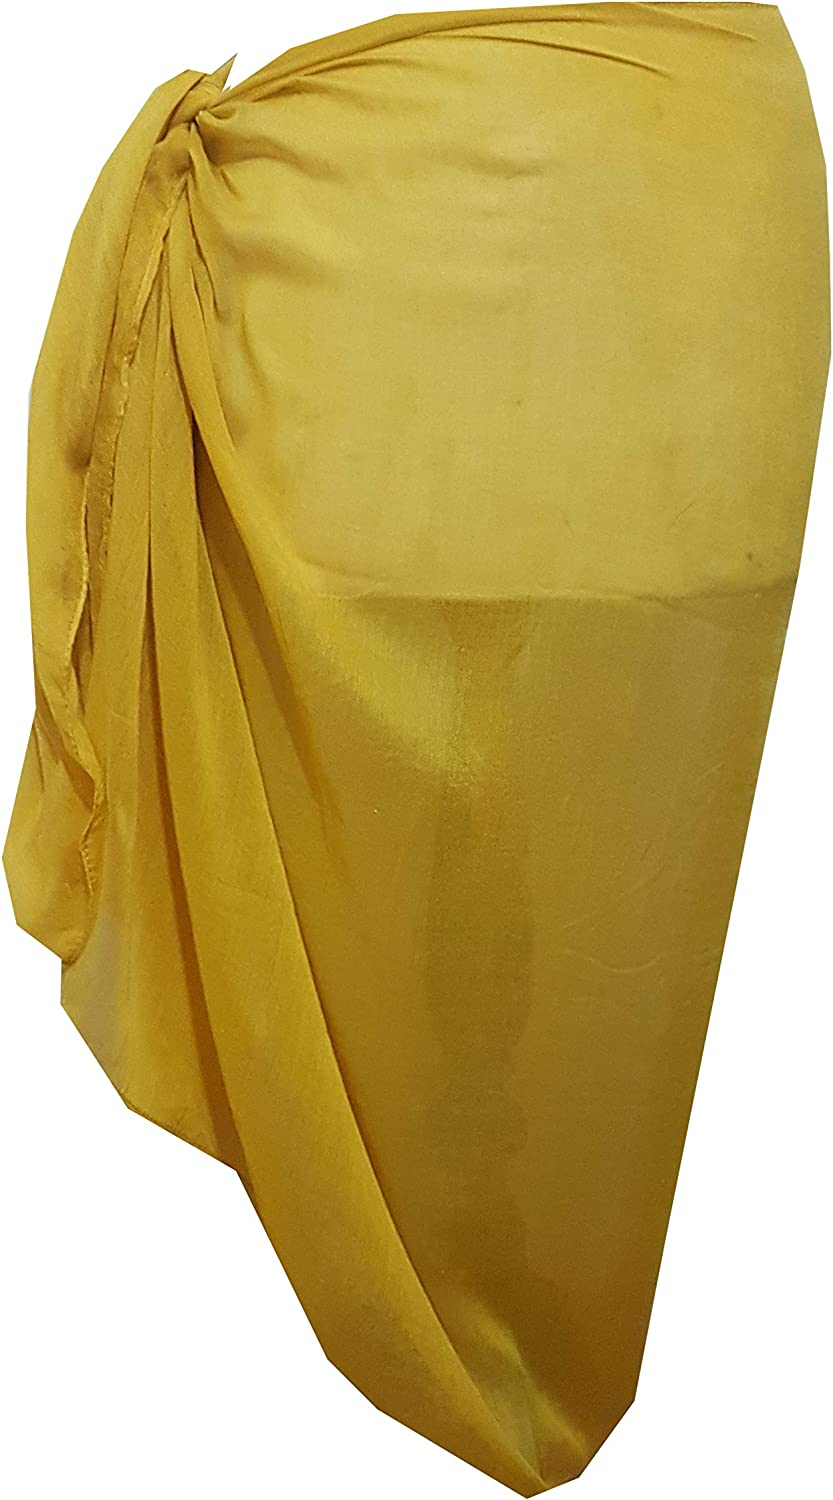 Plain Hijab Scarf Sarong Lovely Colours Lightweight Large Size Buy 4 Get 1 Free By KSC